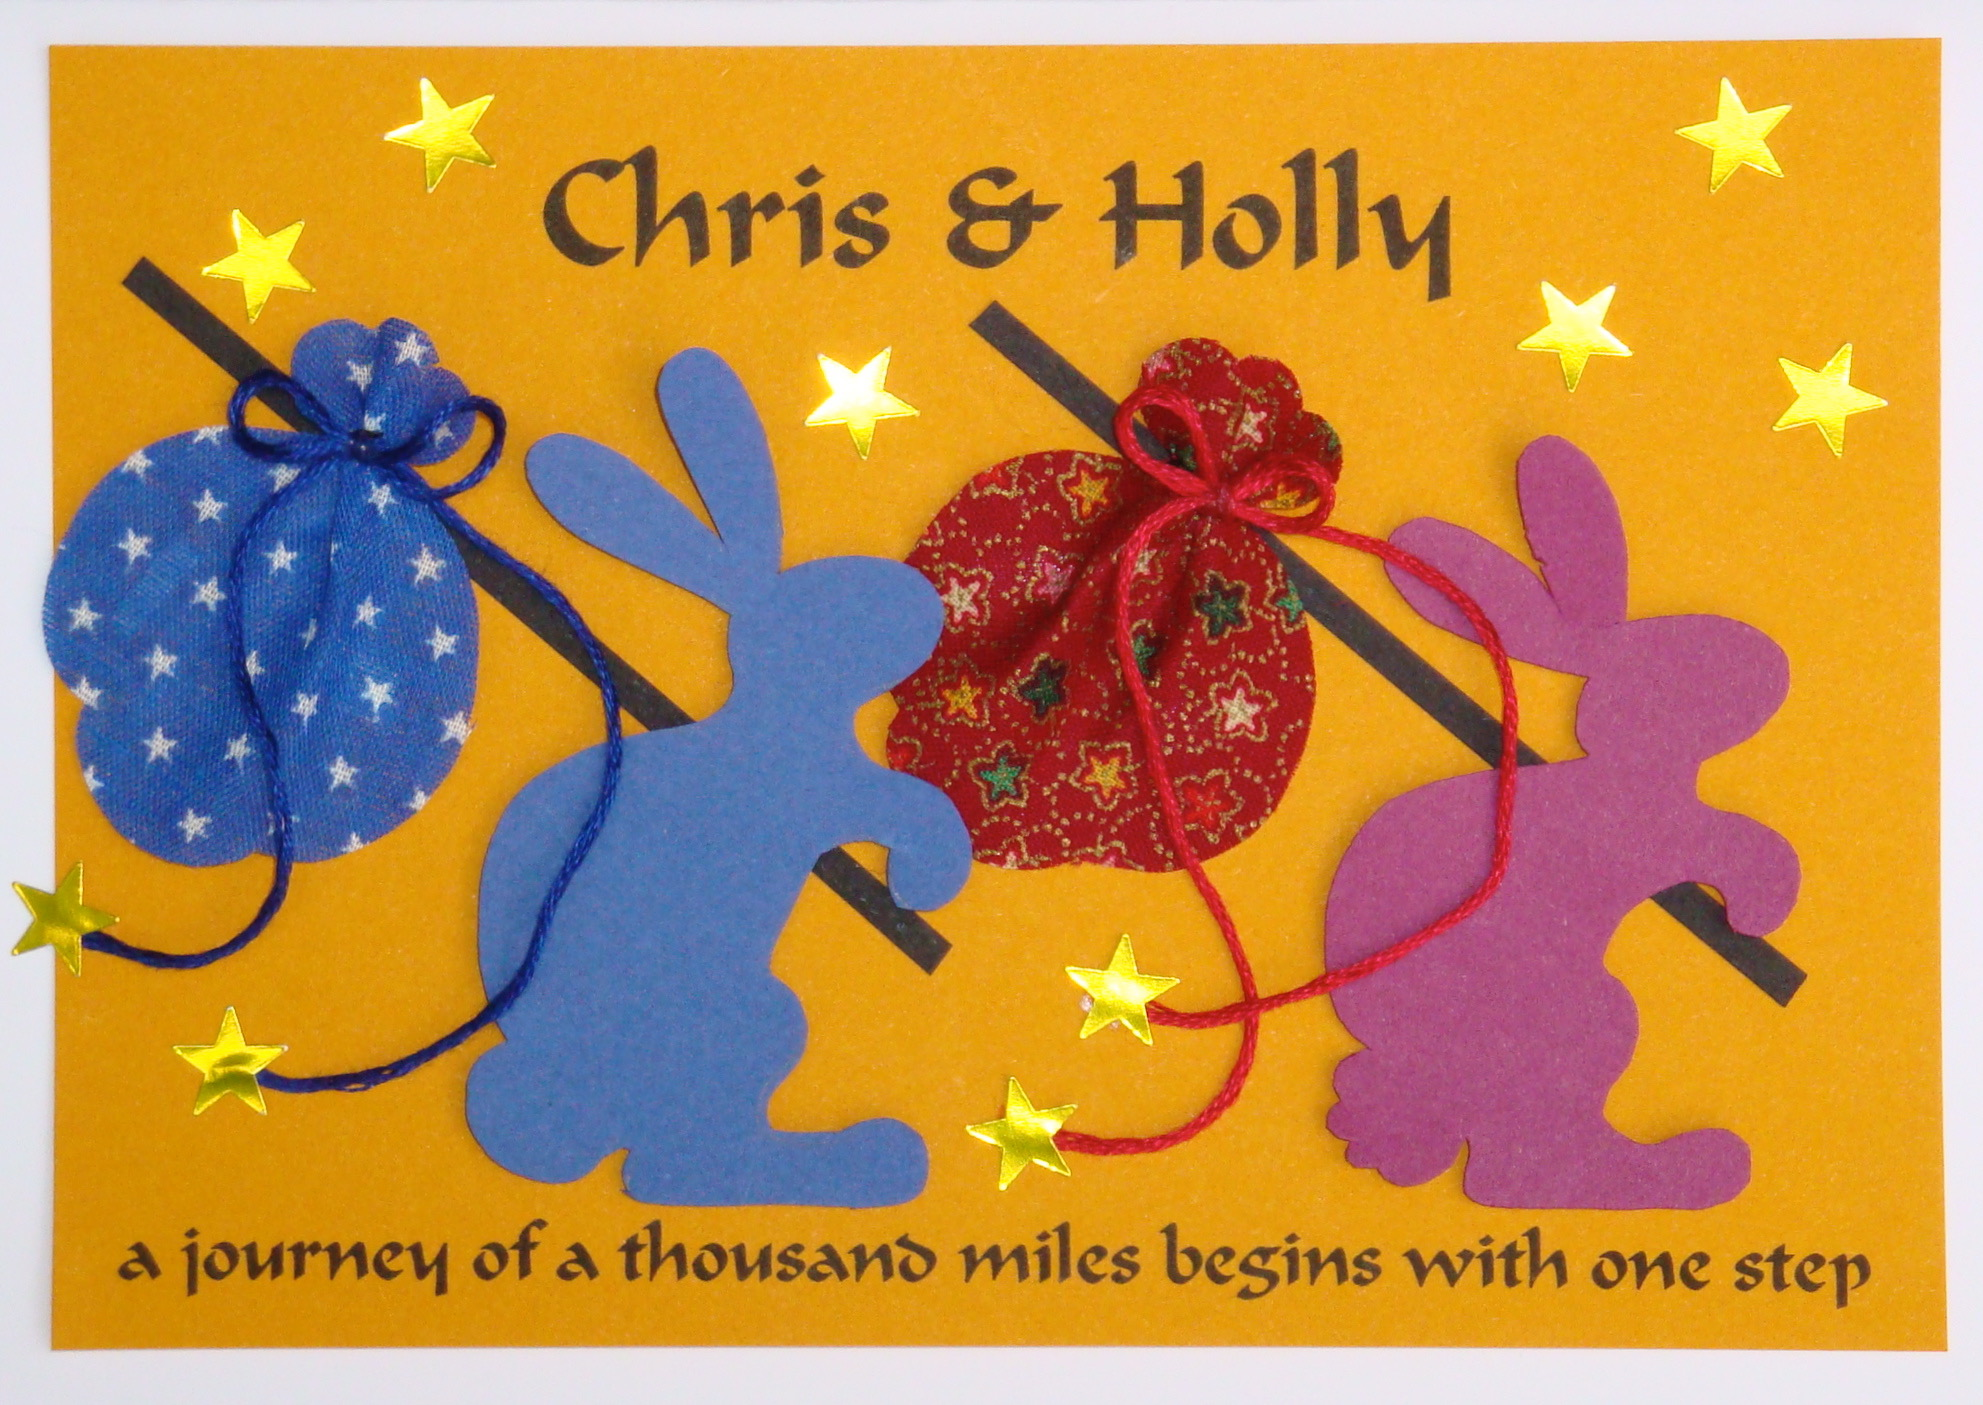 ChrisHolly-card-KariCates.jpg